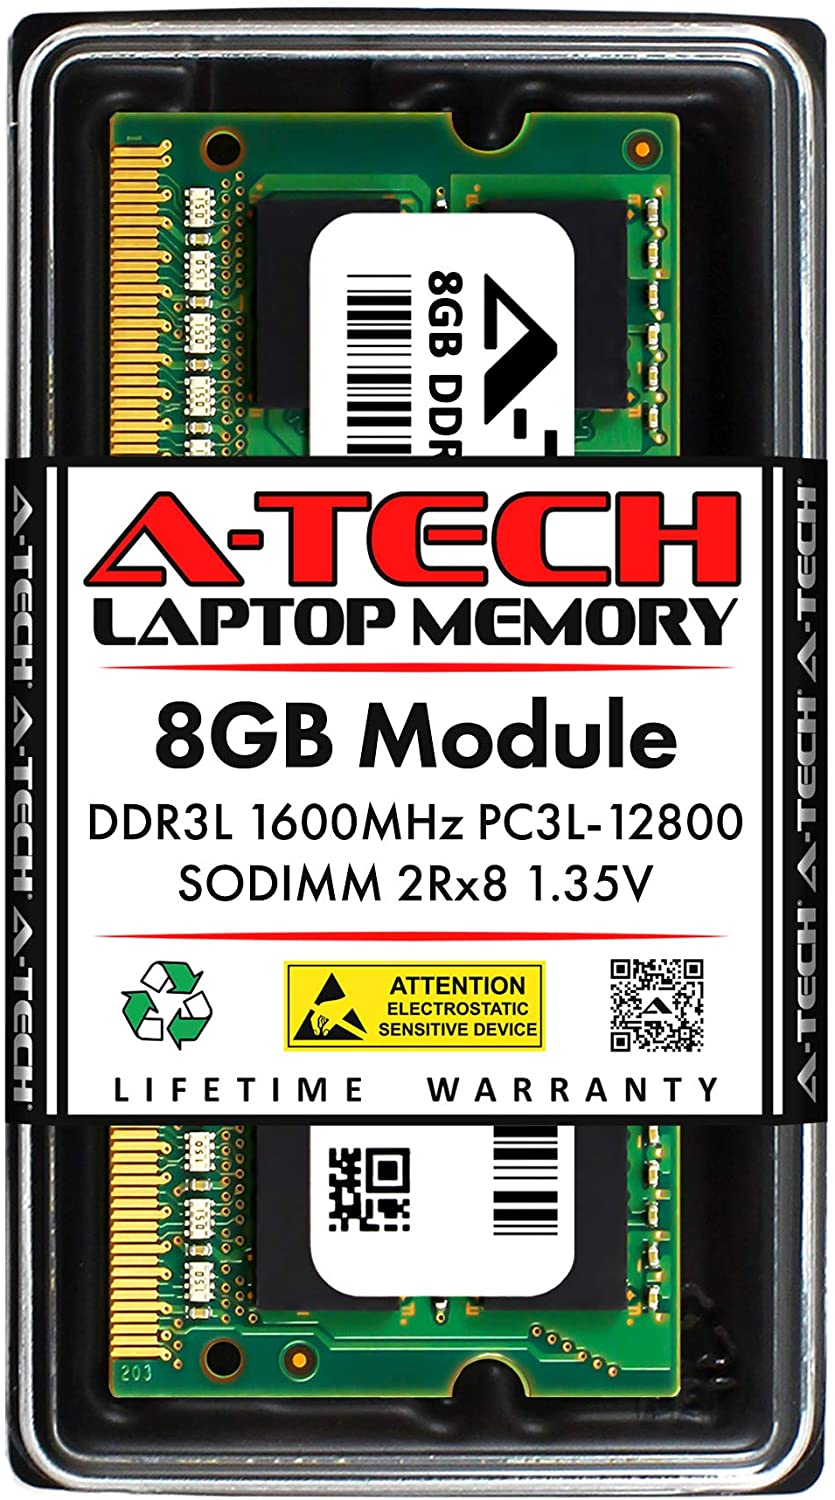 gift A-Tech 8GB Memory RAM for Dell Inspiron 2021 new DDR3L - 3000 3552 15 160